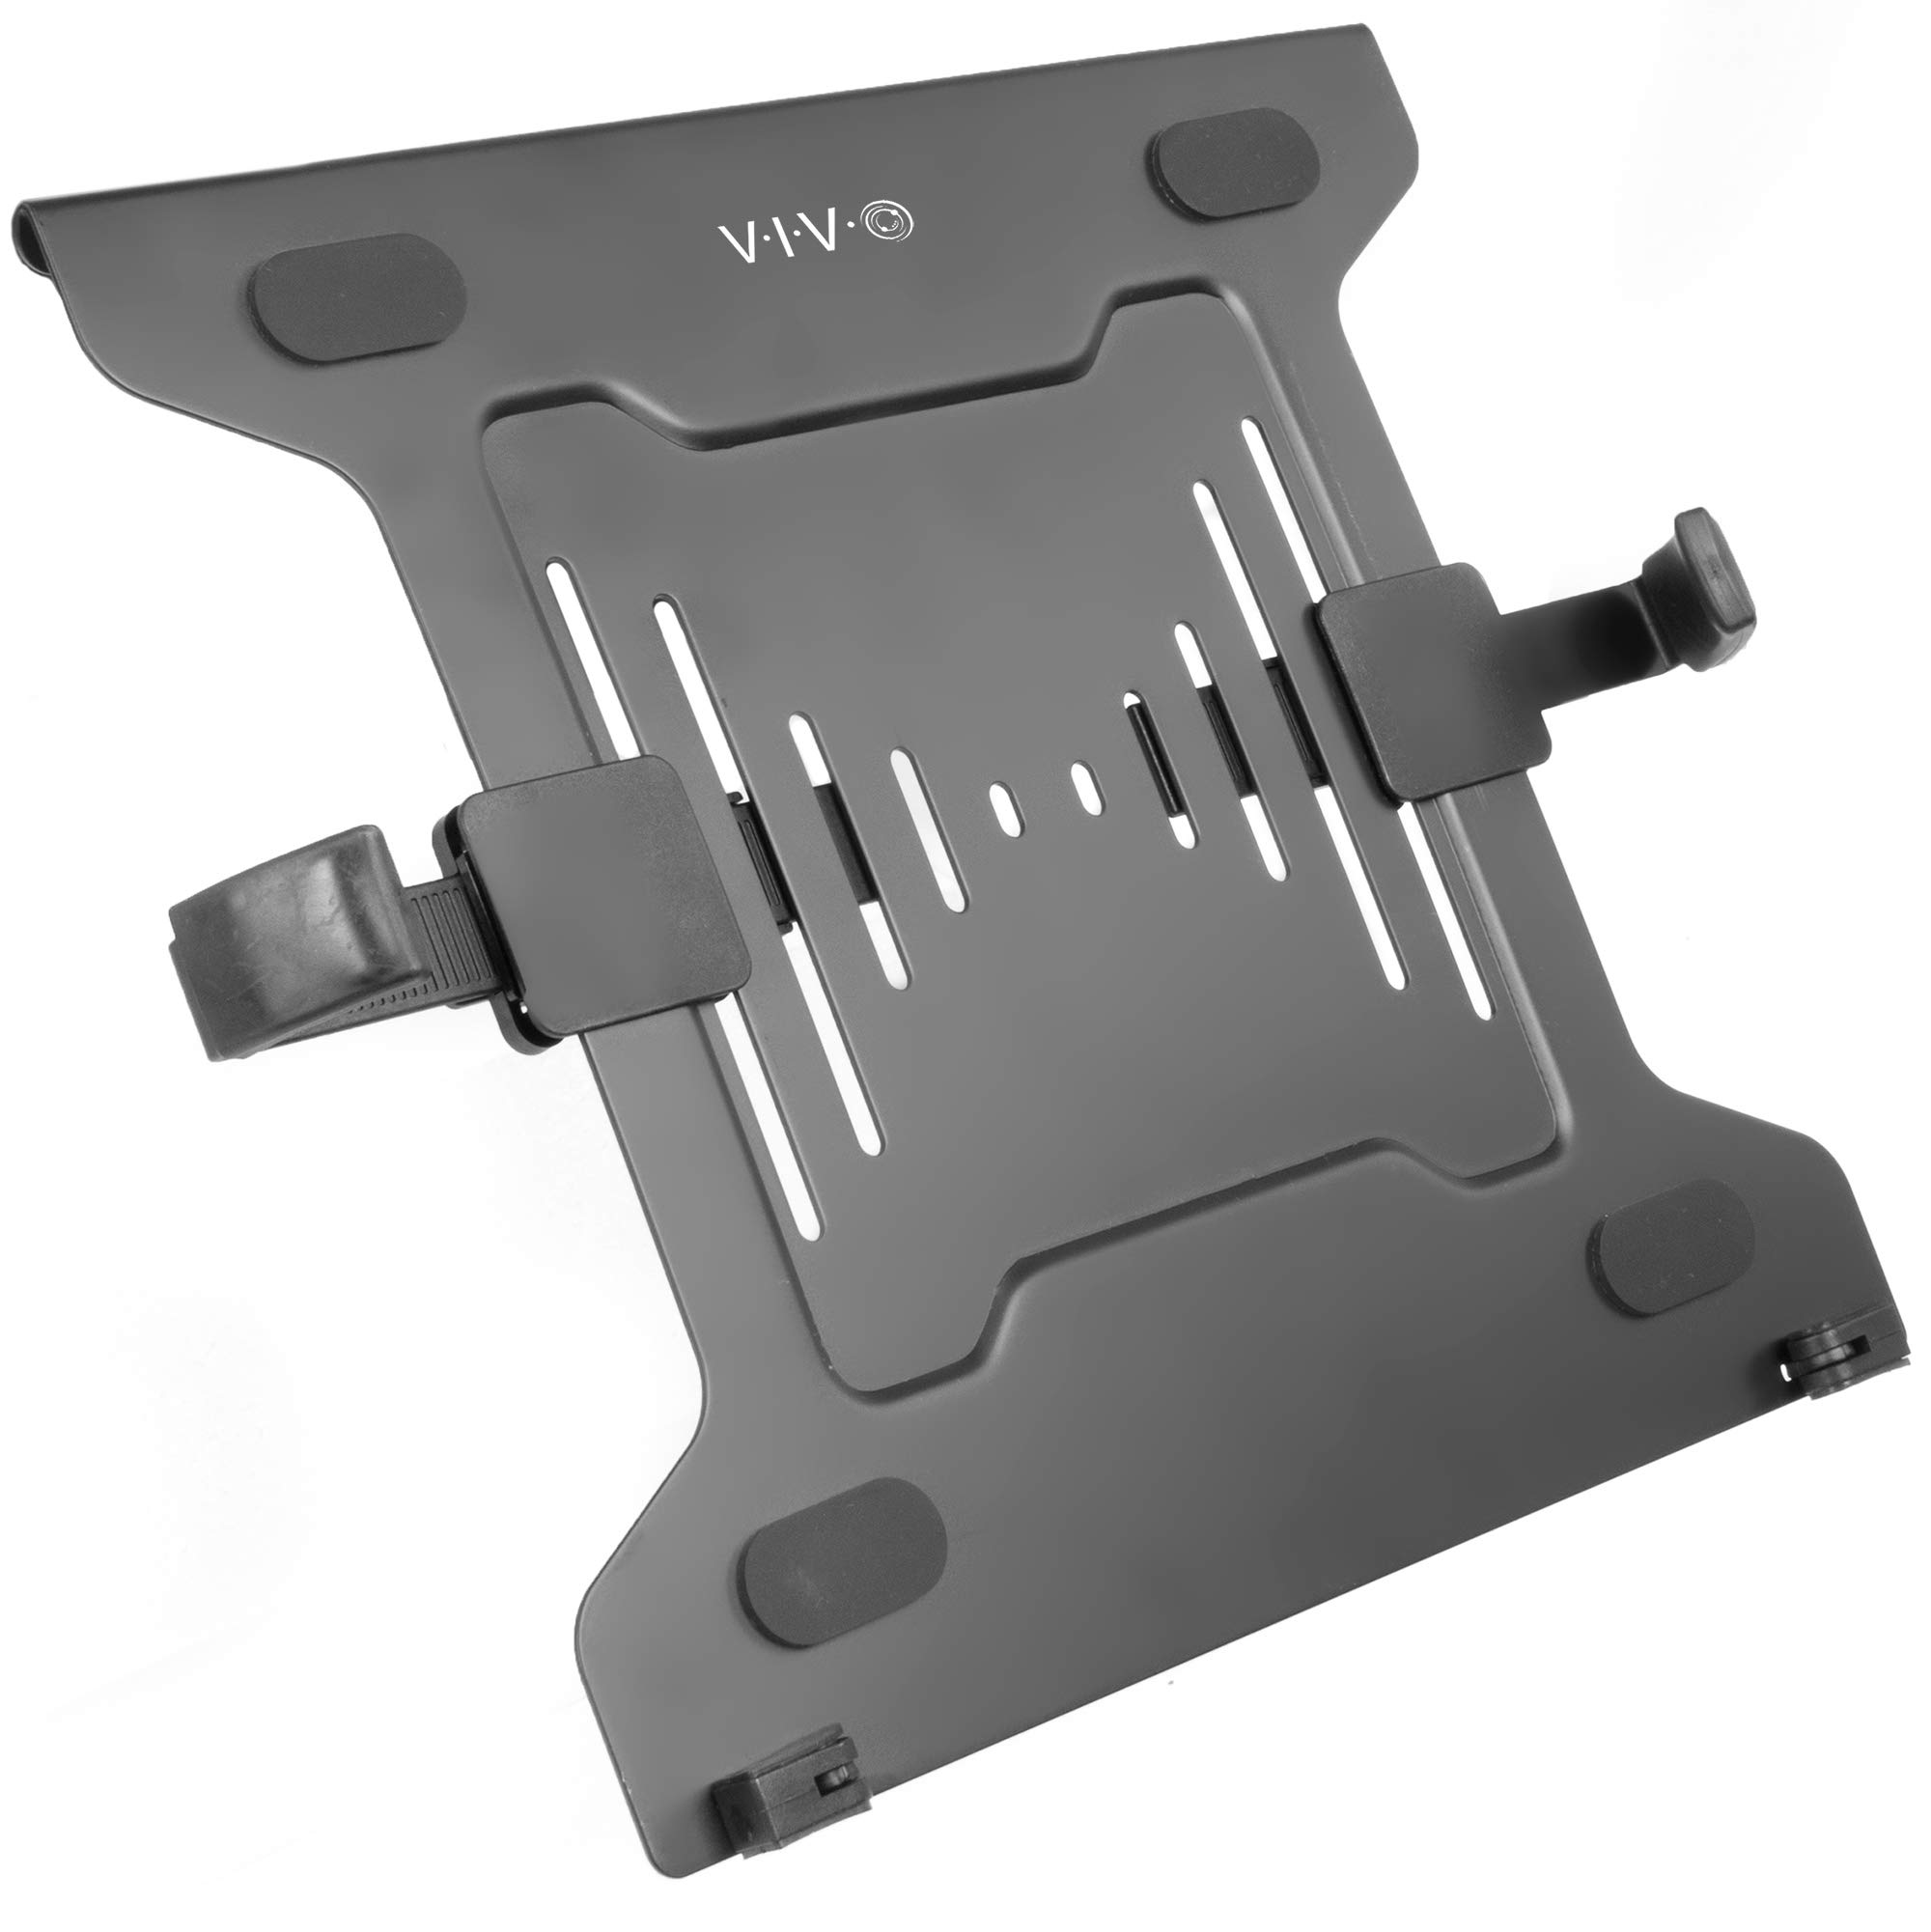 VIVO Universal Adjustable 10 to 15.6 inch Laptop Mount Holder for VESA Compatible Monitor Arms | Notebook Tray (Stand-LAP3) by VIVO